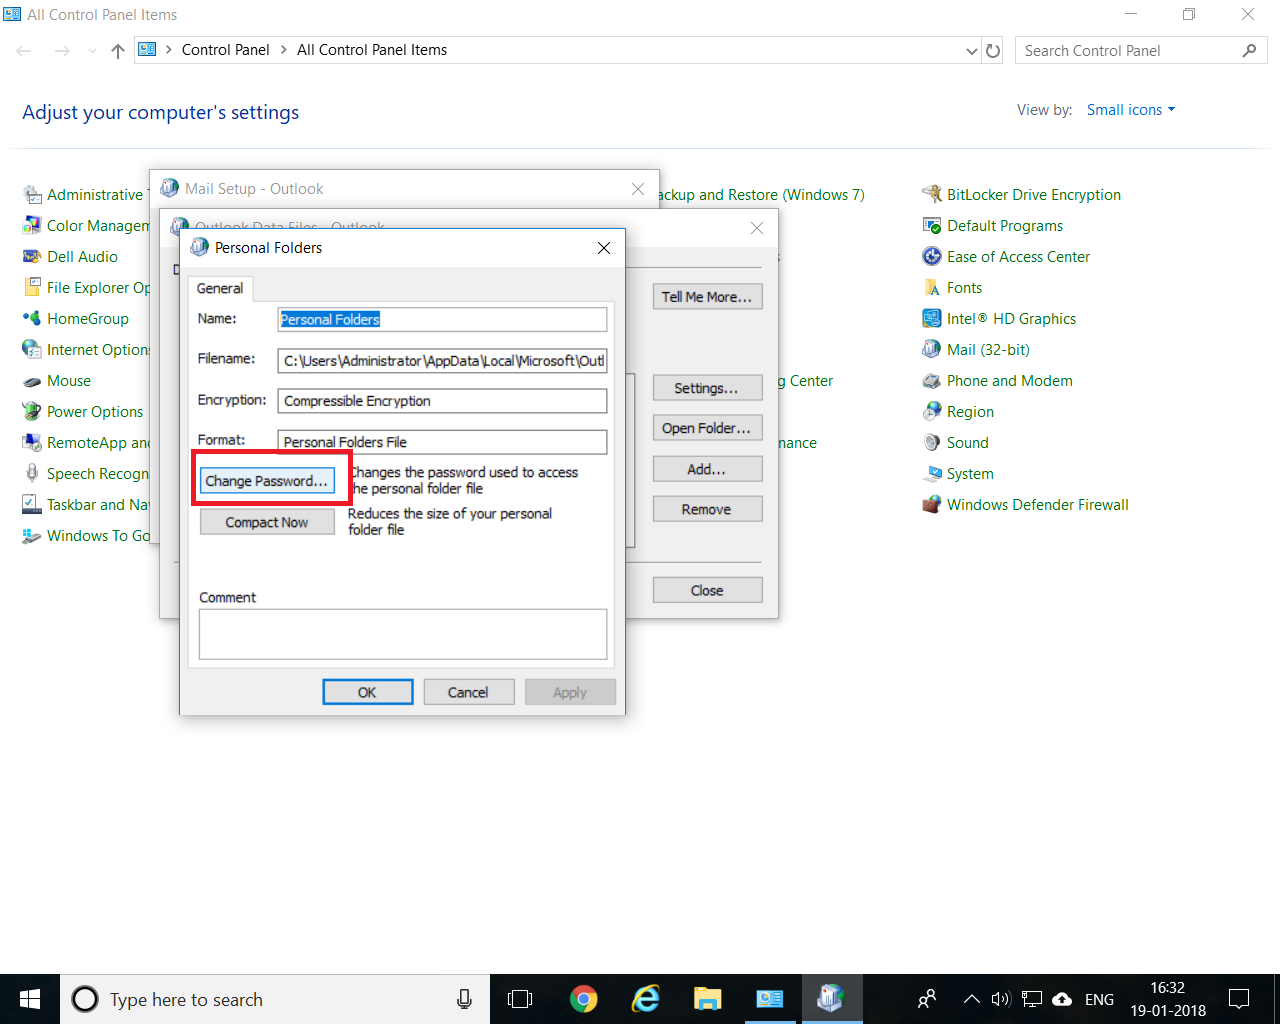 how to change password on outlook.com mail